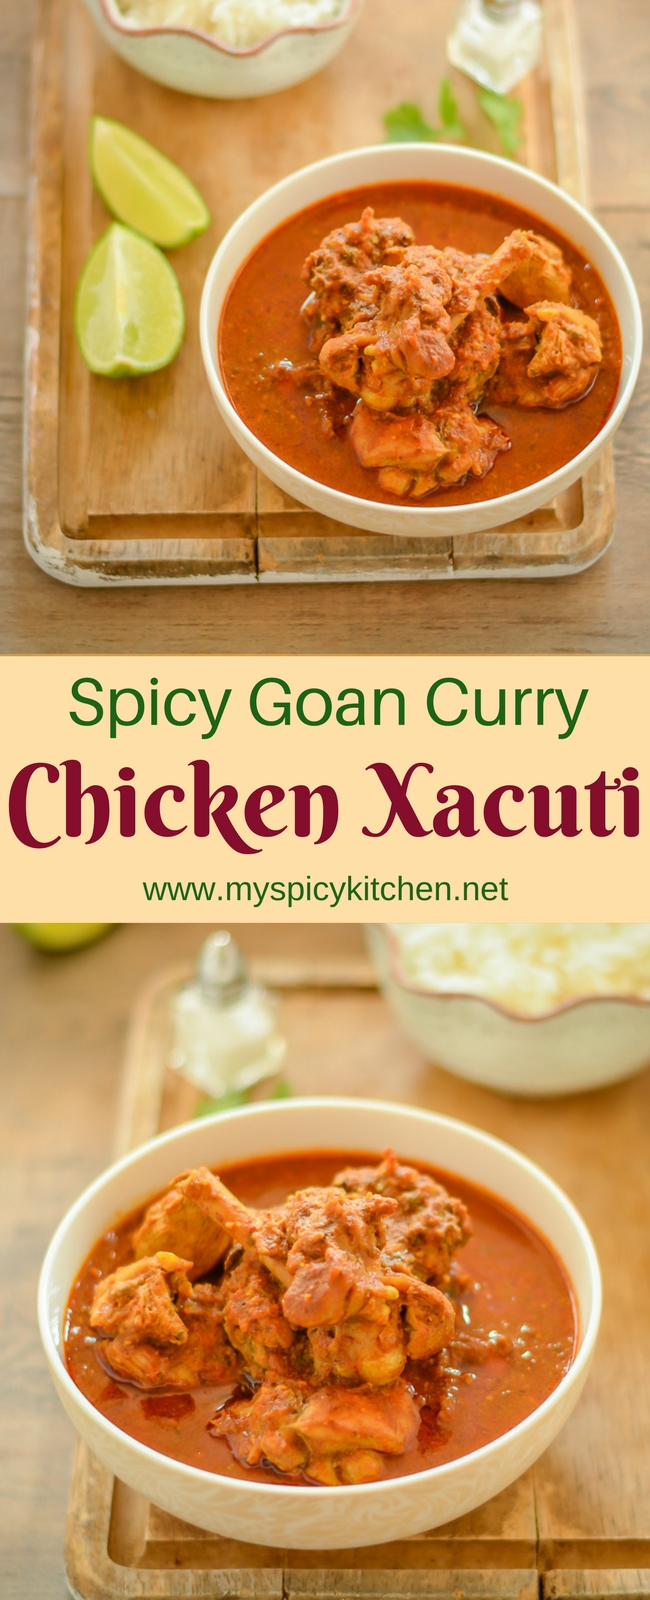 Chicken Xacuti